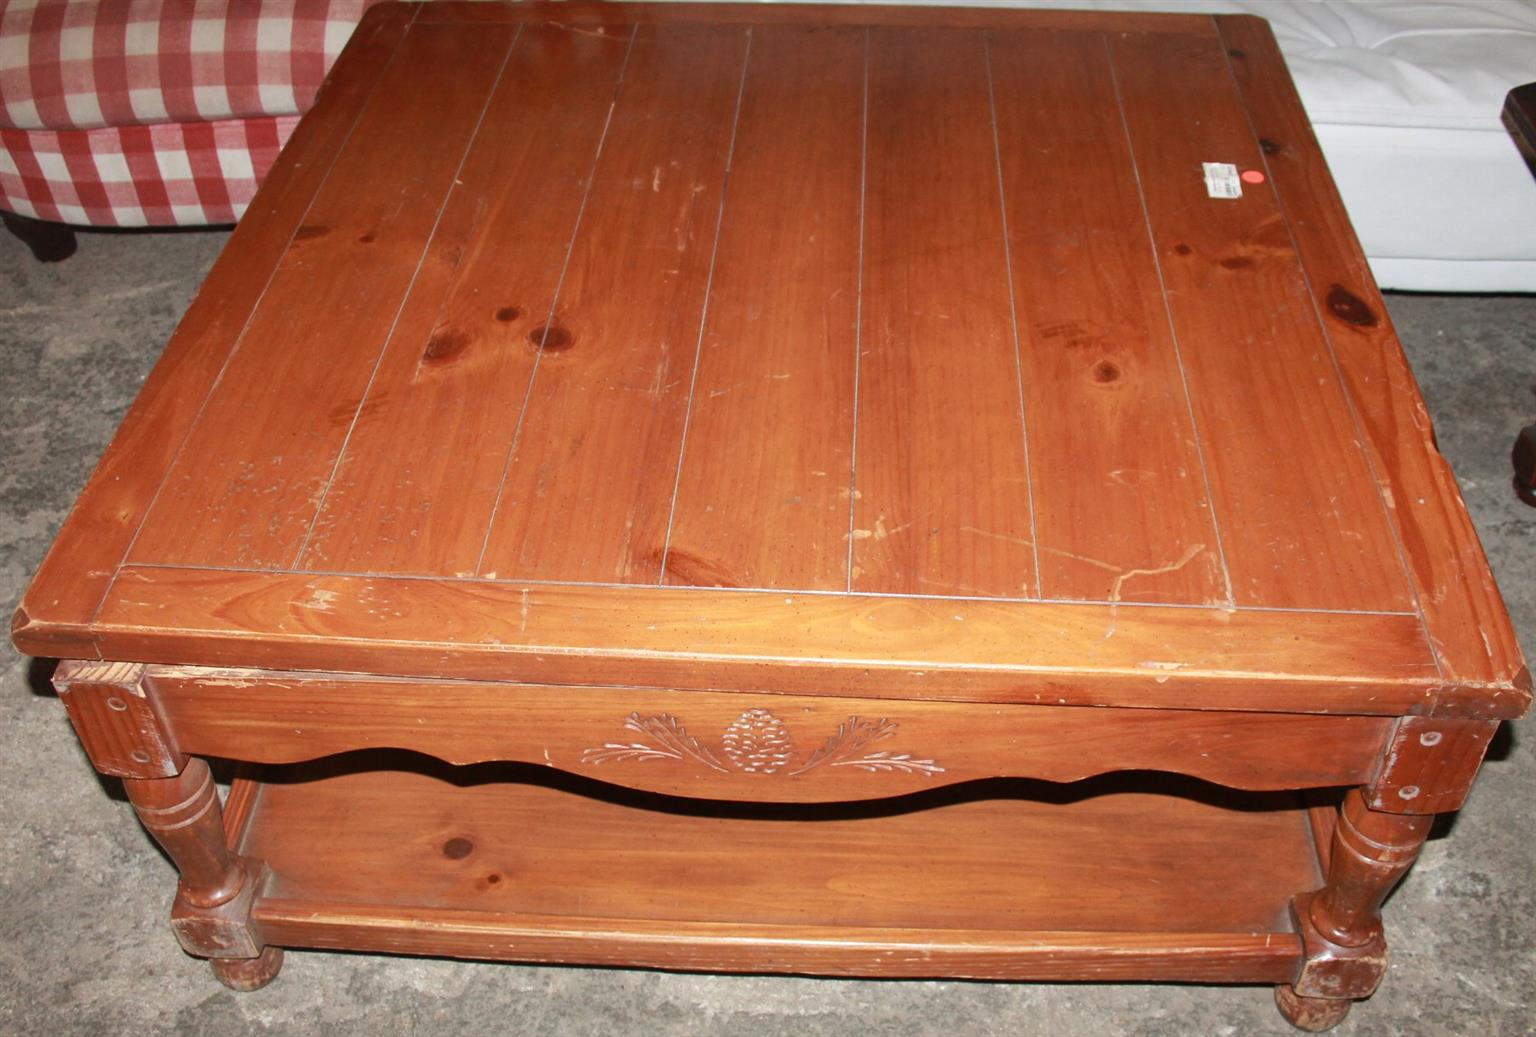 Coffee table S022303a #Rosettenvillepawnshop